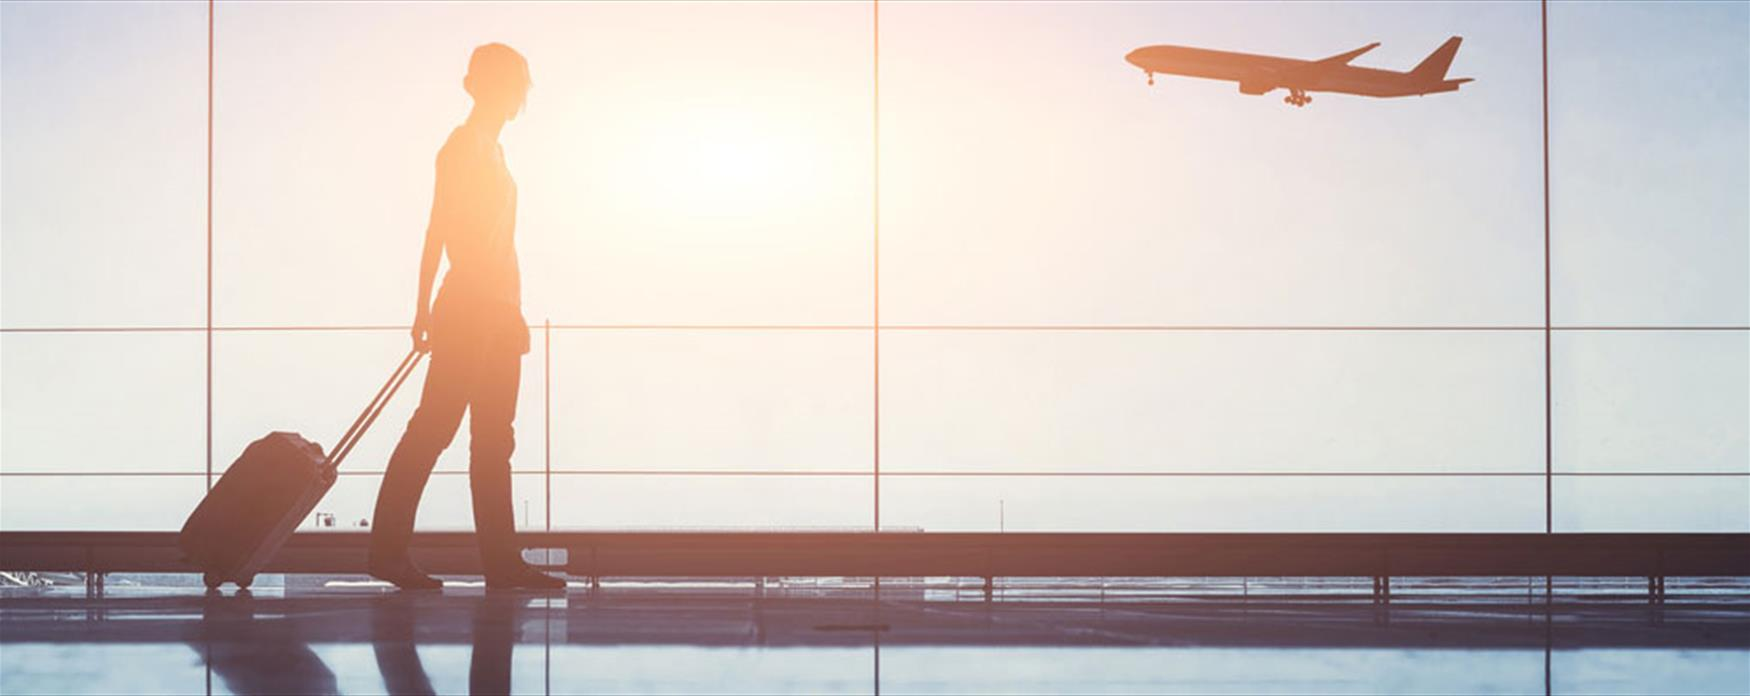 Airport terminal people traveling, silhouette of woman passenger with baggage in airport